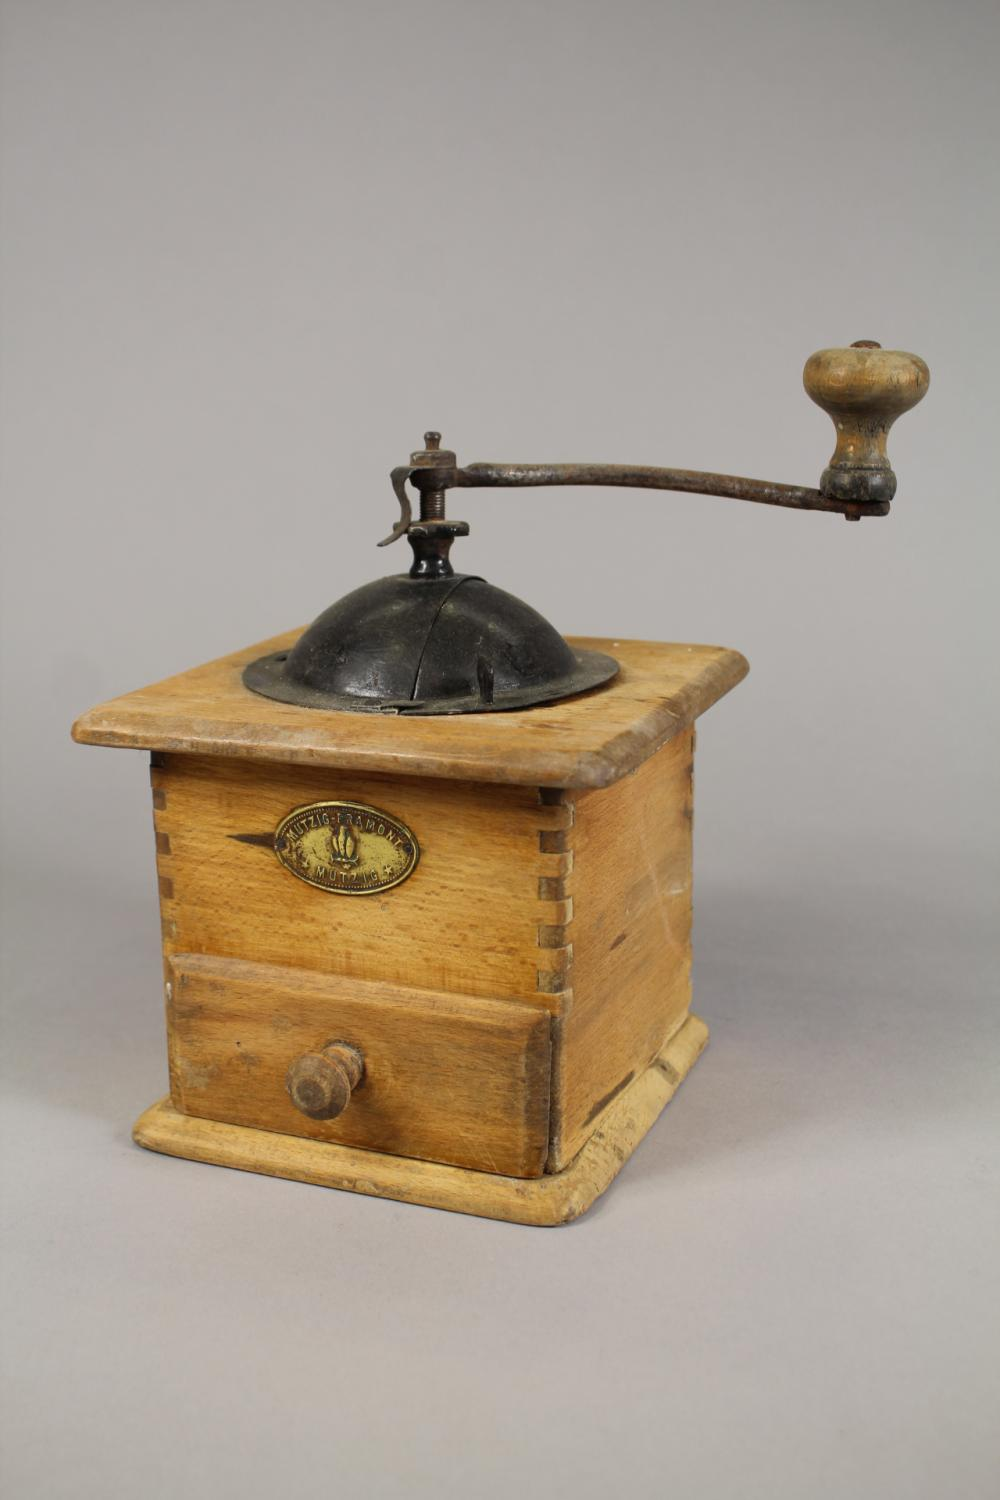 Vintage French coffee grinder, approx 22cm H